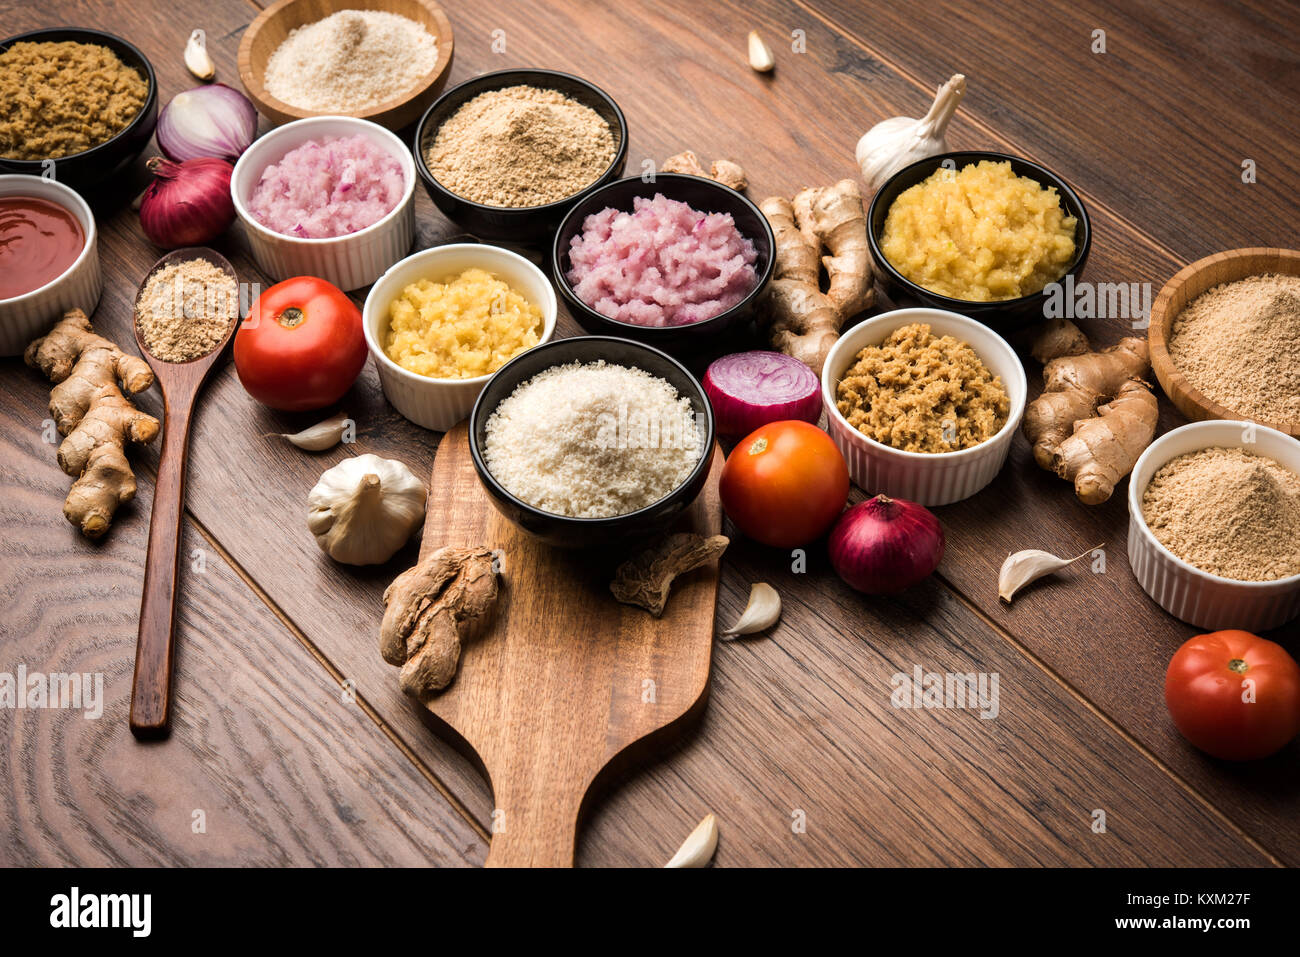 Ginger, Garlic, onion and tomato paste and powder in and raw form. Group of Basic Indian food ingredients over wooden - Stock Image